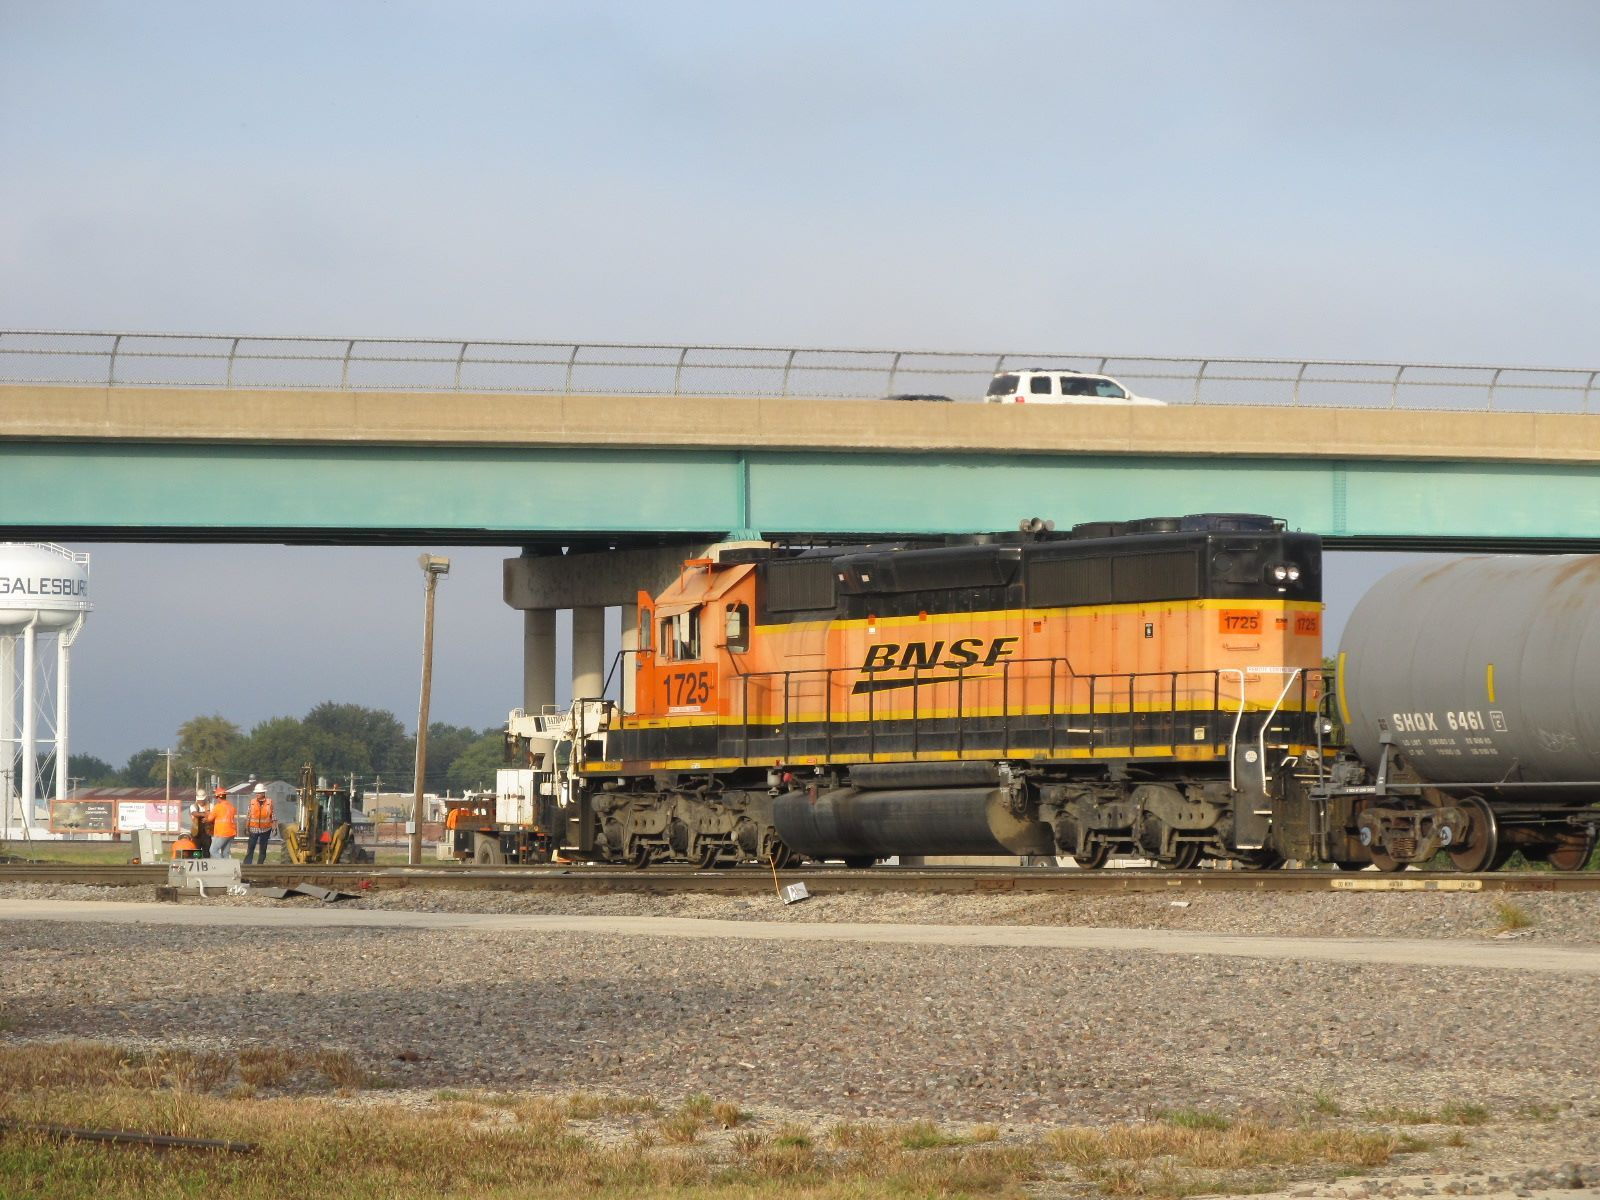 Bnsf 1725 on a switch job passing bnsf employees nearby